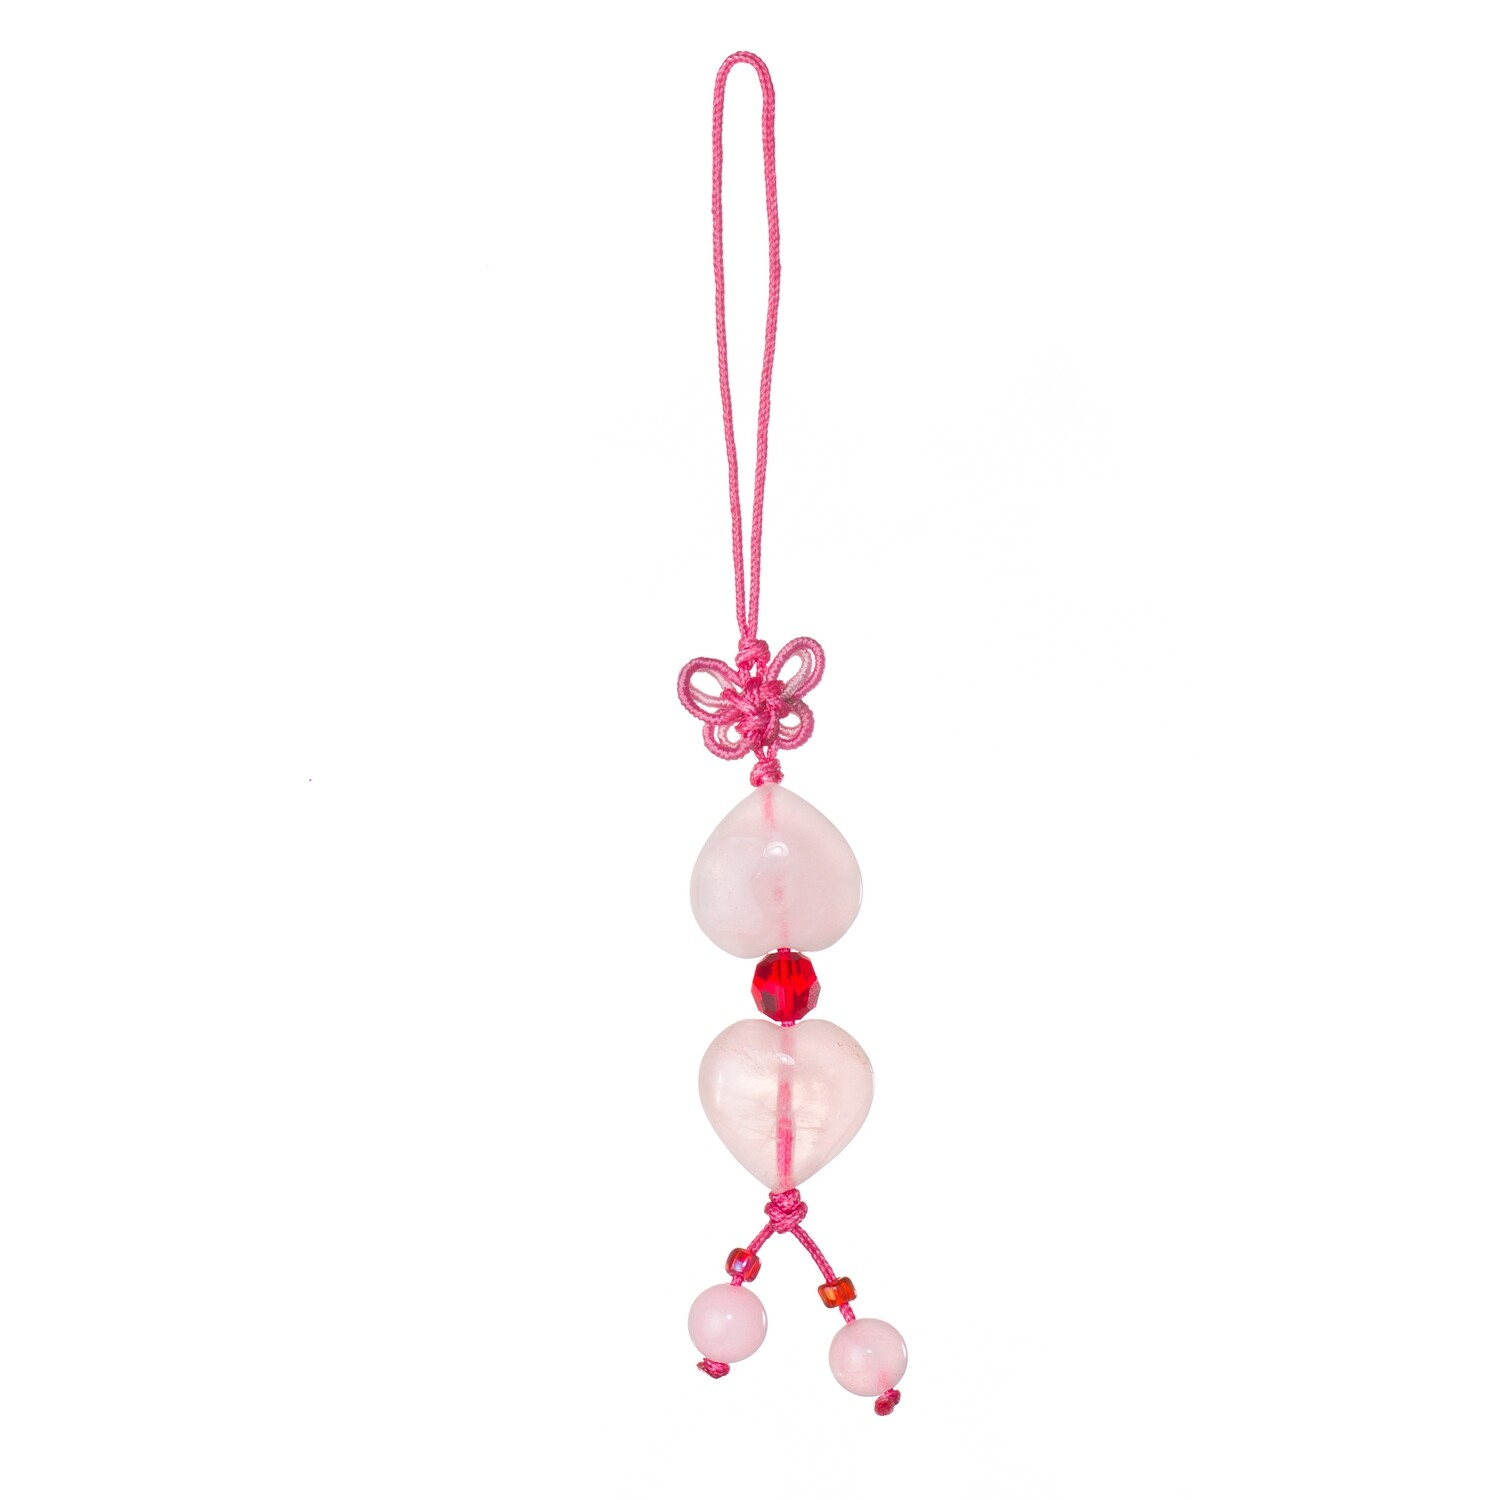 Double Heart Charm Key Chain